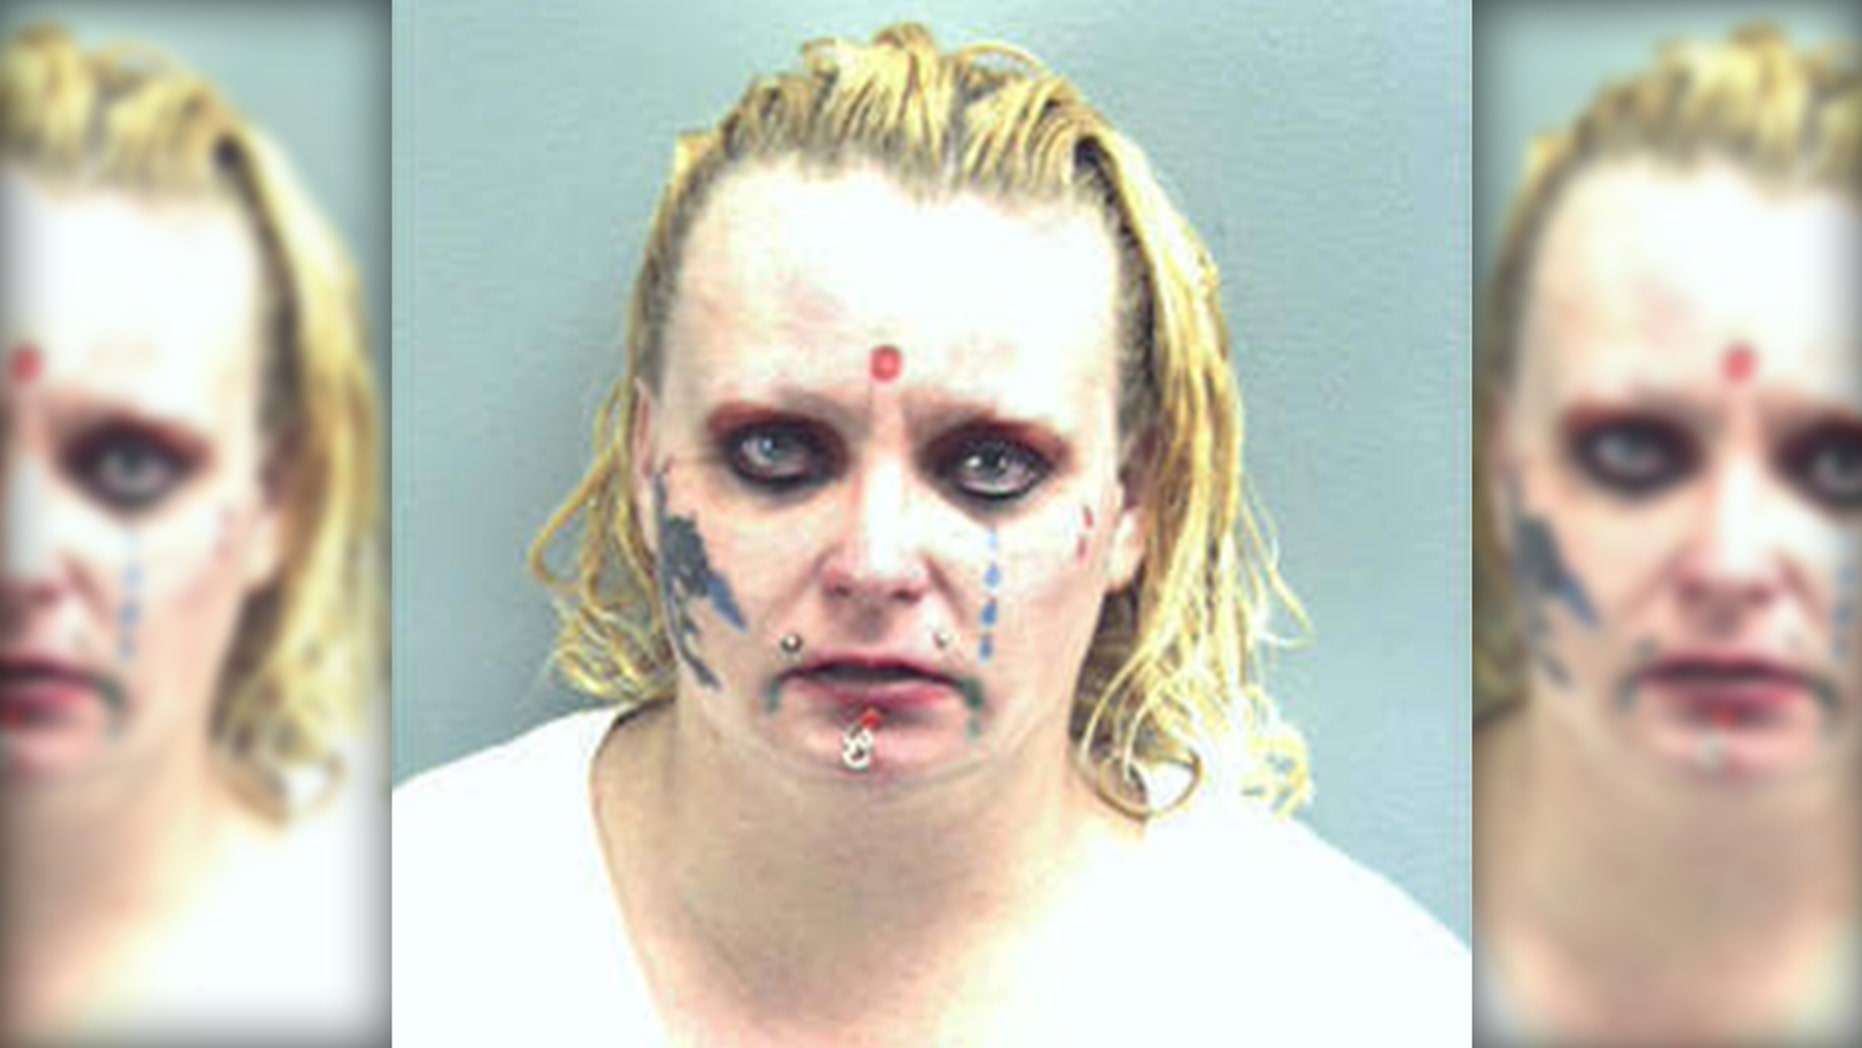 Crystal Mostek, 33, allegedly threatened to blow up a 7-Eleven in April 2018.